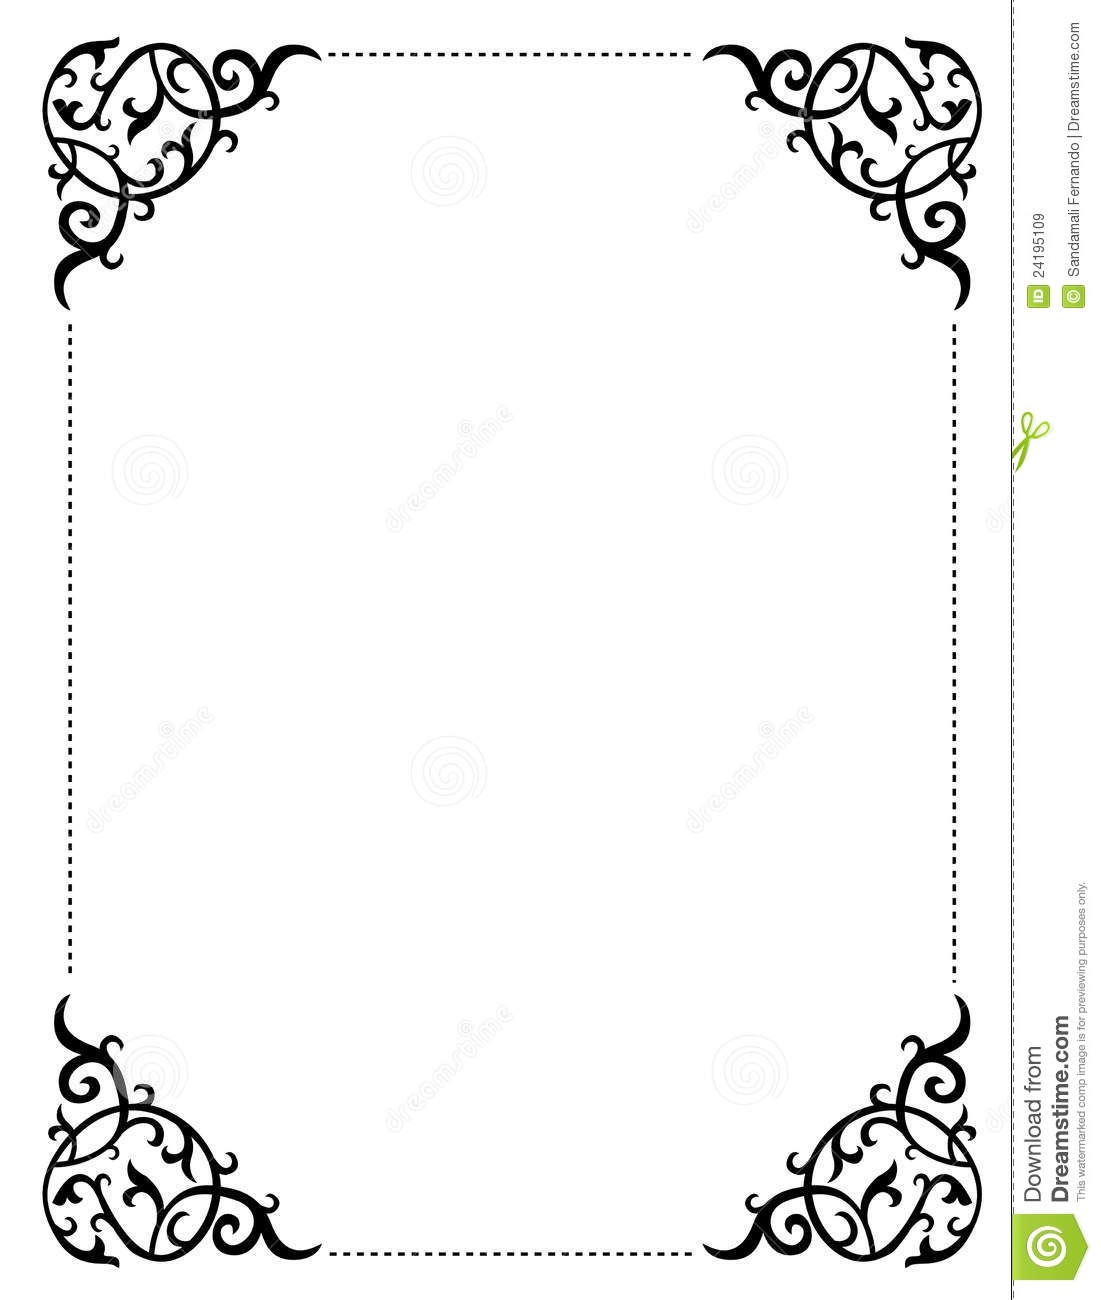 Printable Clipart Borders | Free Download Best Printable Clipart - Free Printable Borders And Frames